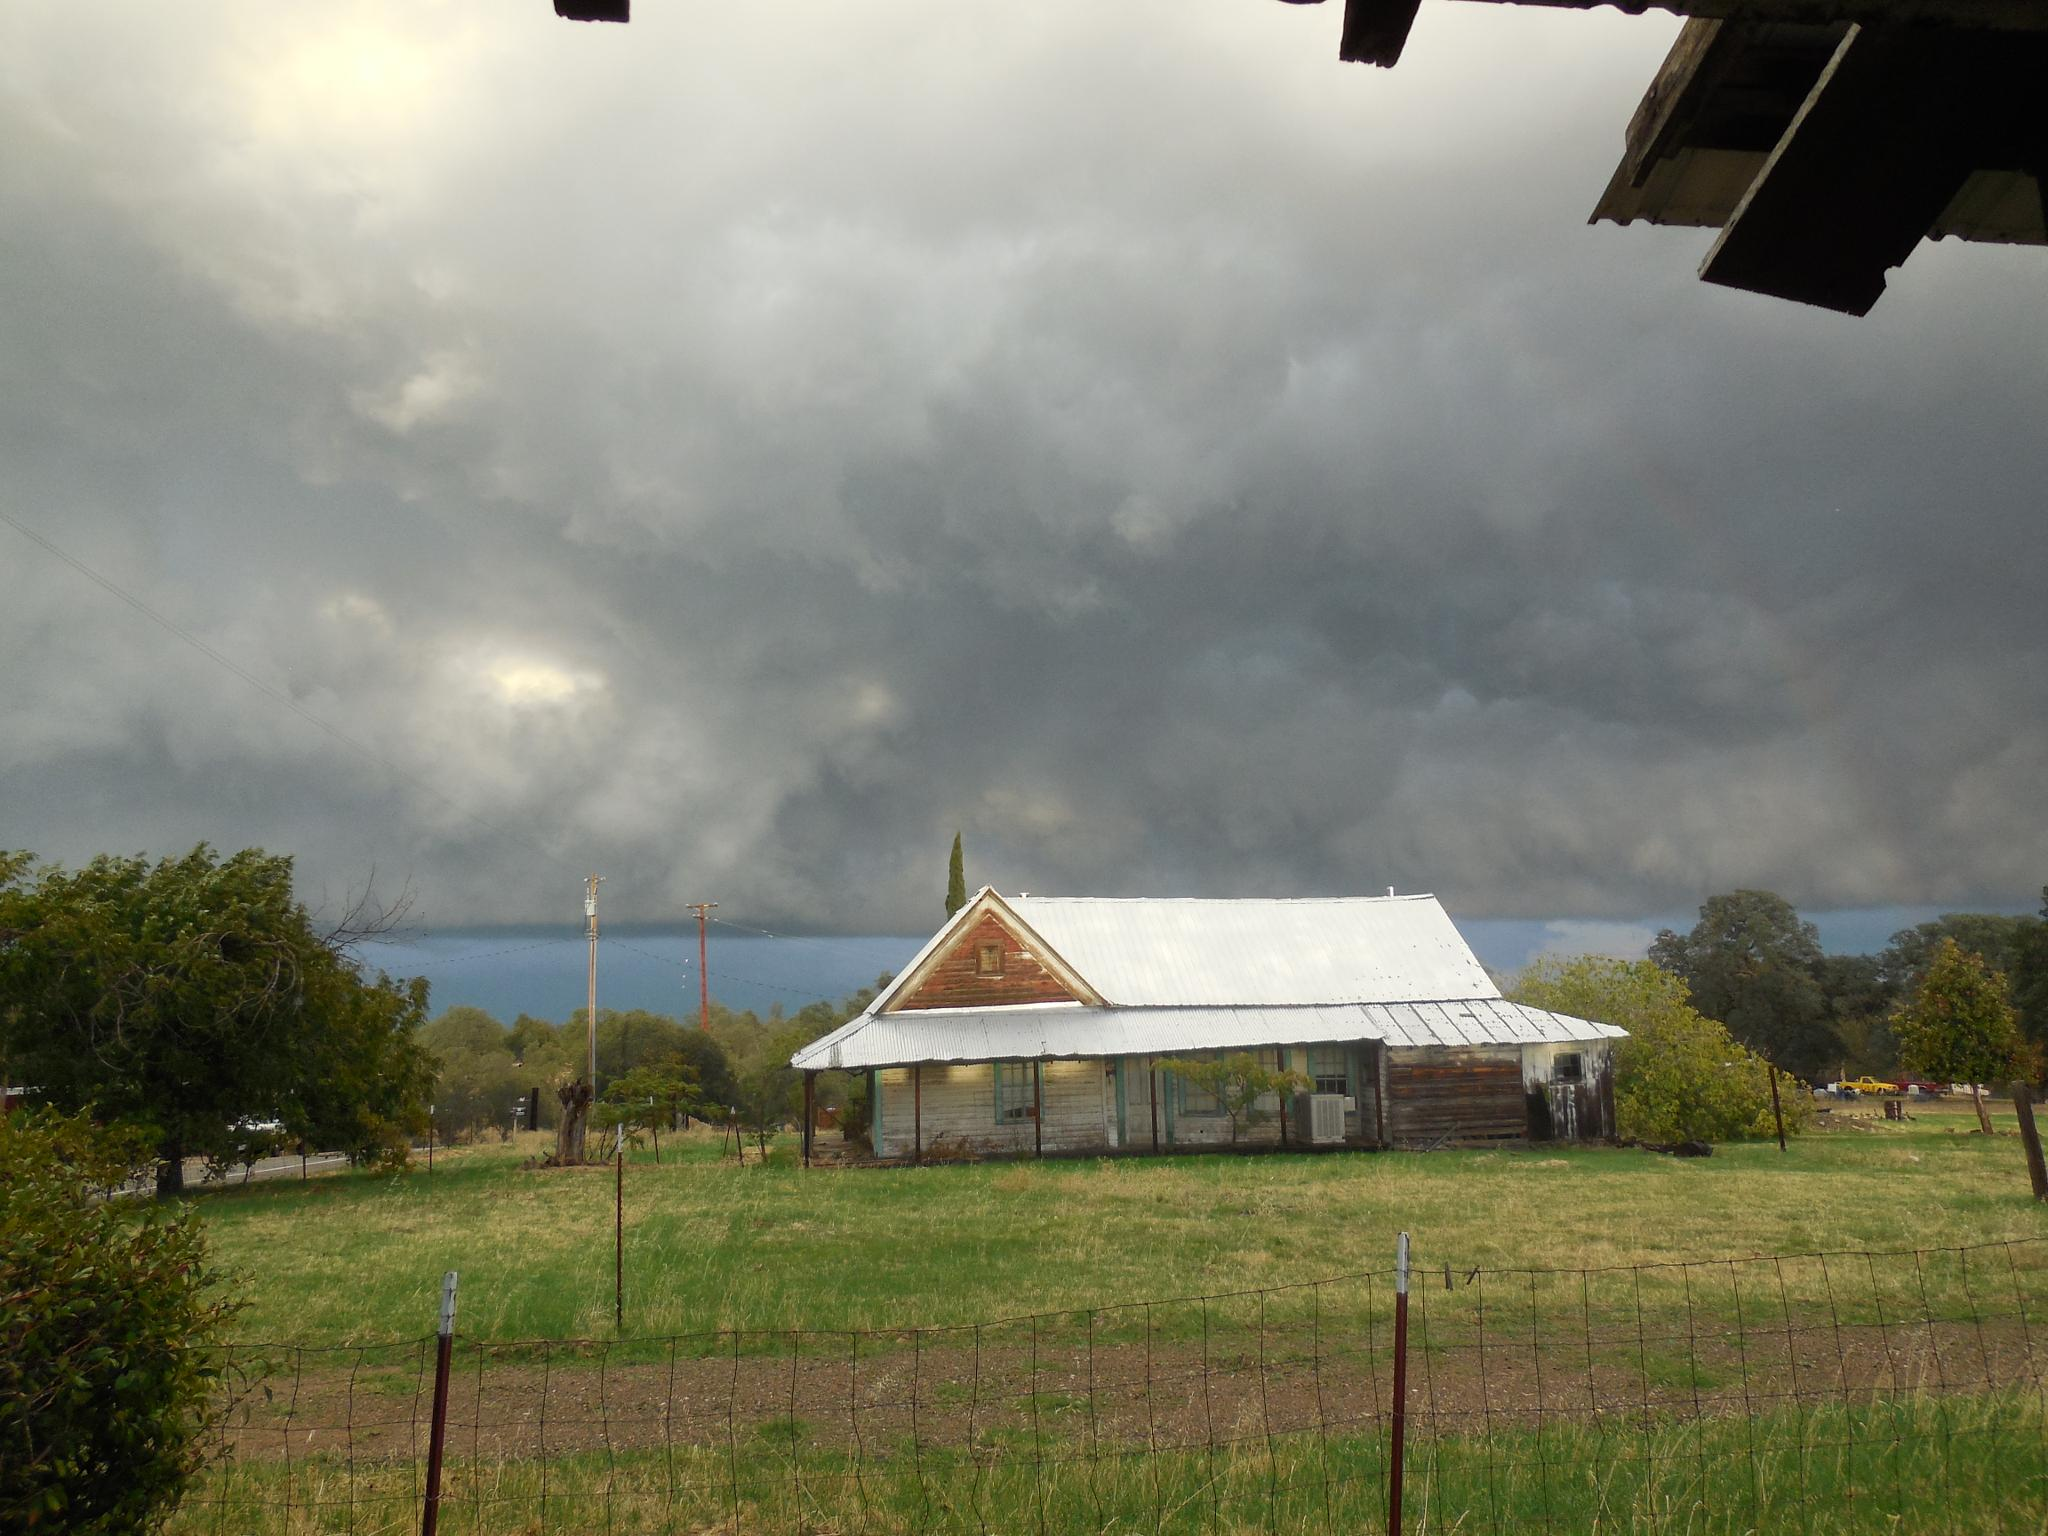 Storm over abandoned house by Debbie Galvez